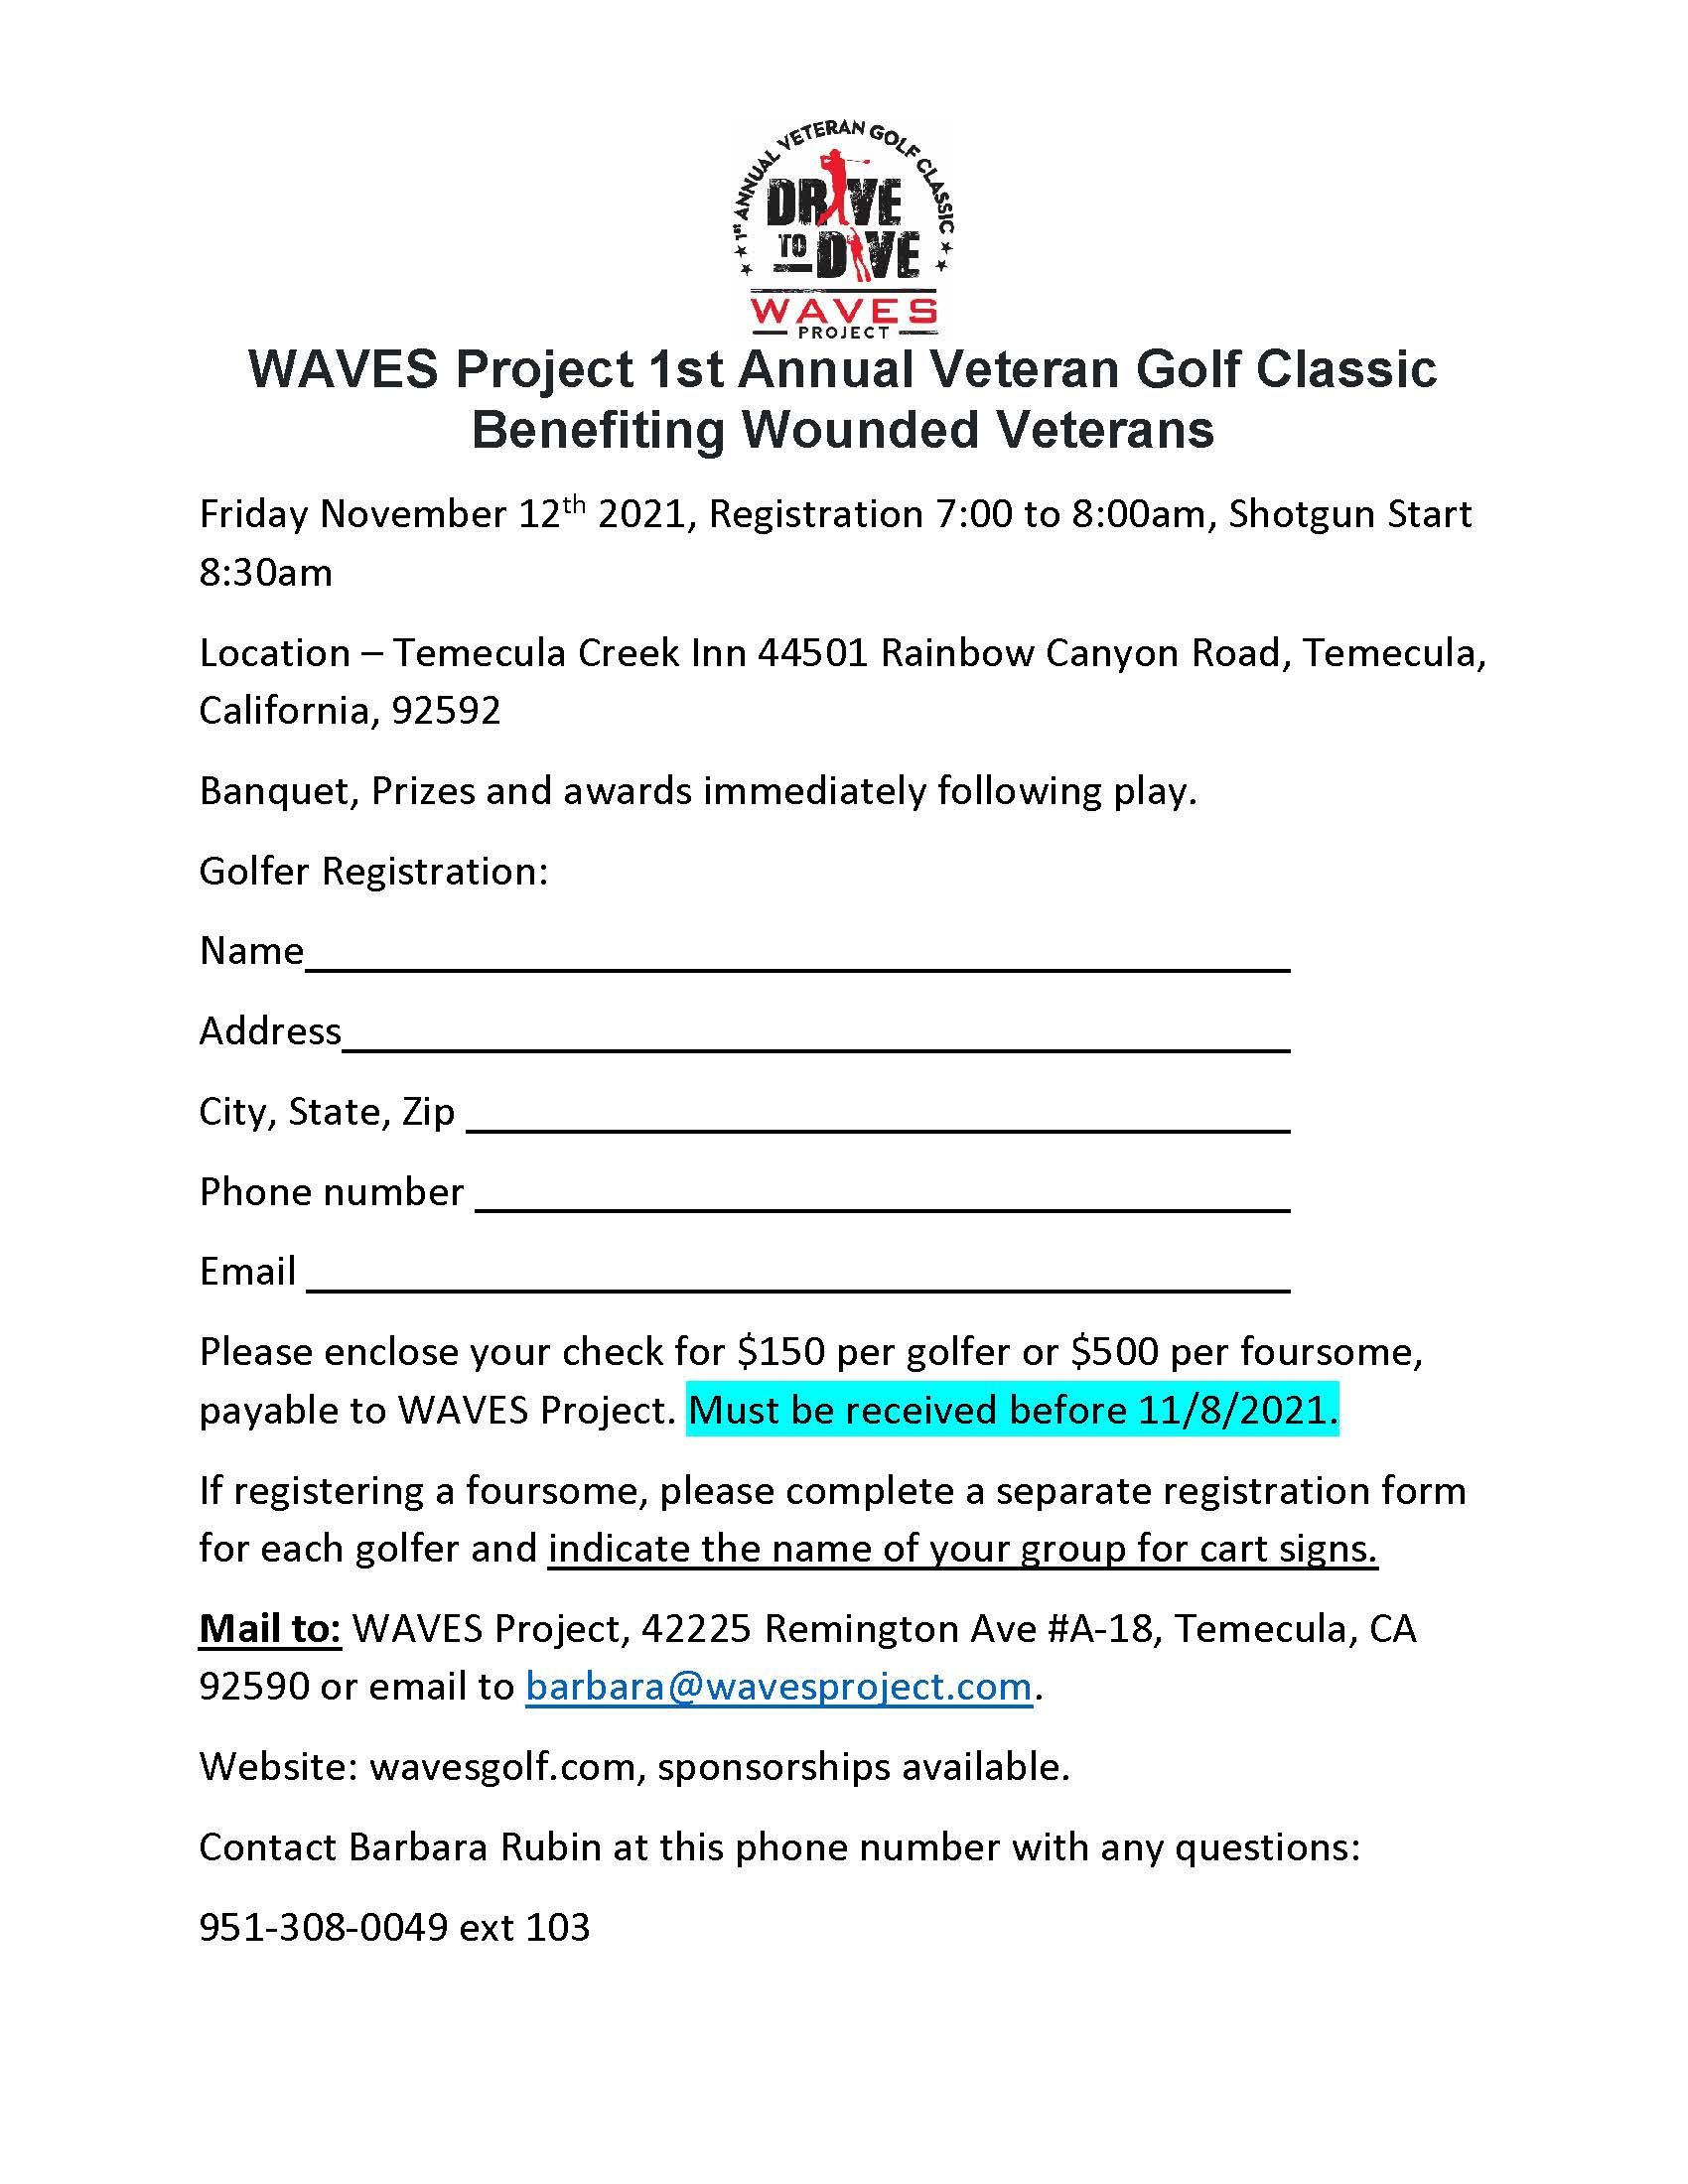 WAVES Project 1st Annual Veteran Golf Classic             Benefiting Wounded Veterans - Default Image of Mail-In Registration